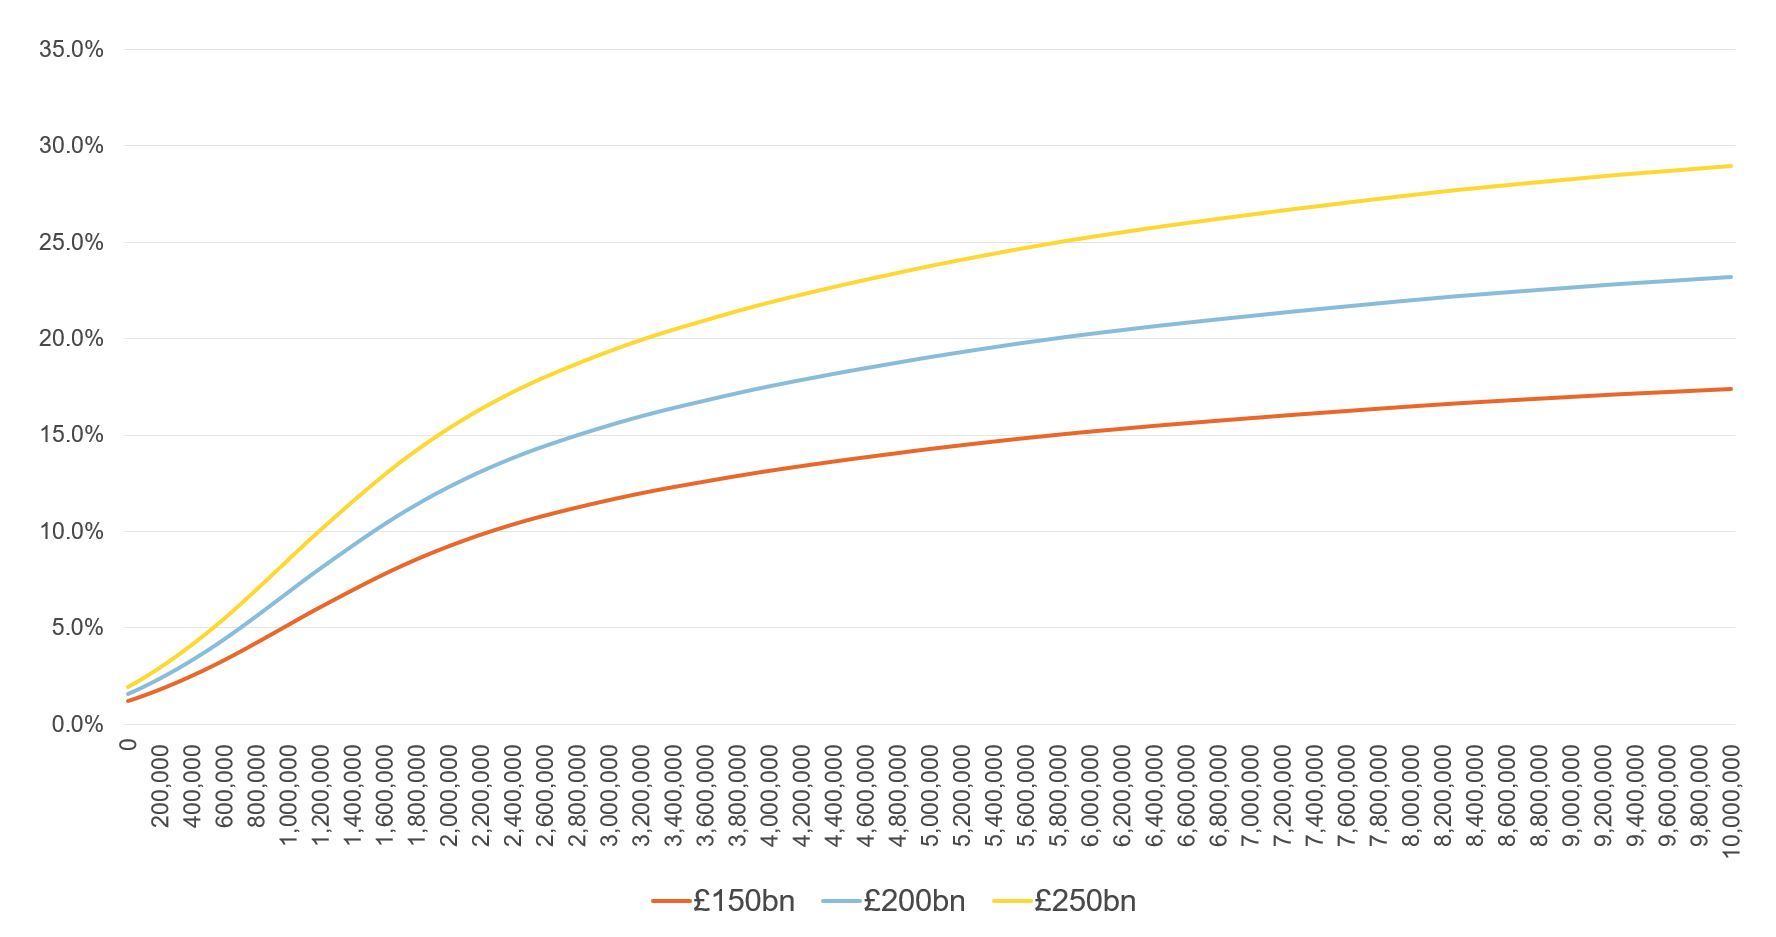 Figure showing rate and thresholds  generating different revenue targets from a one-off wealth tax, after administrative costs